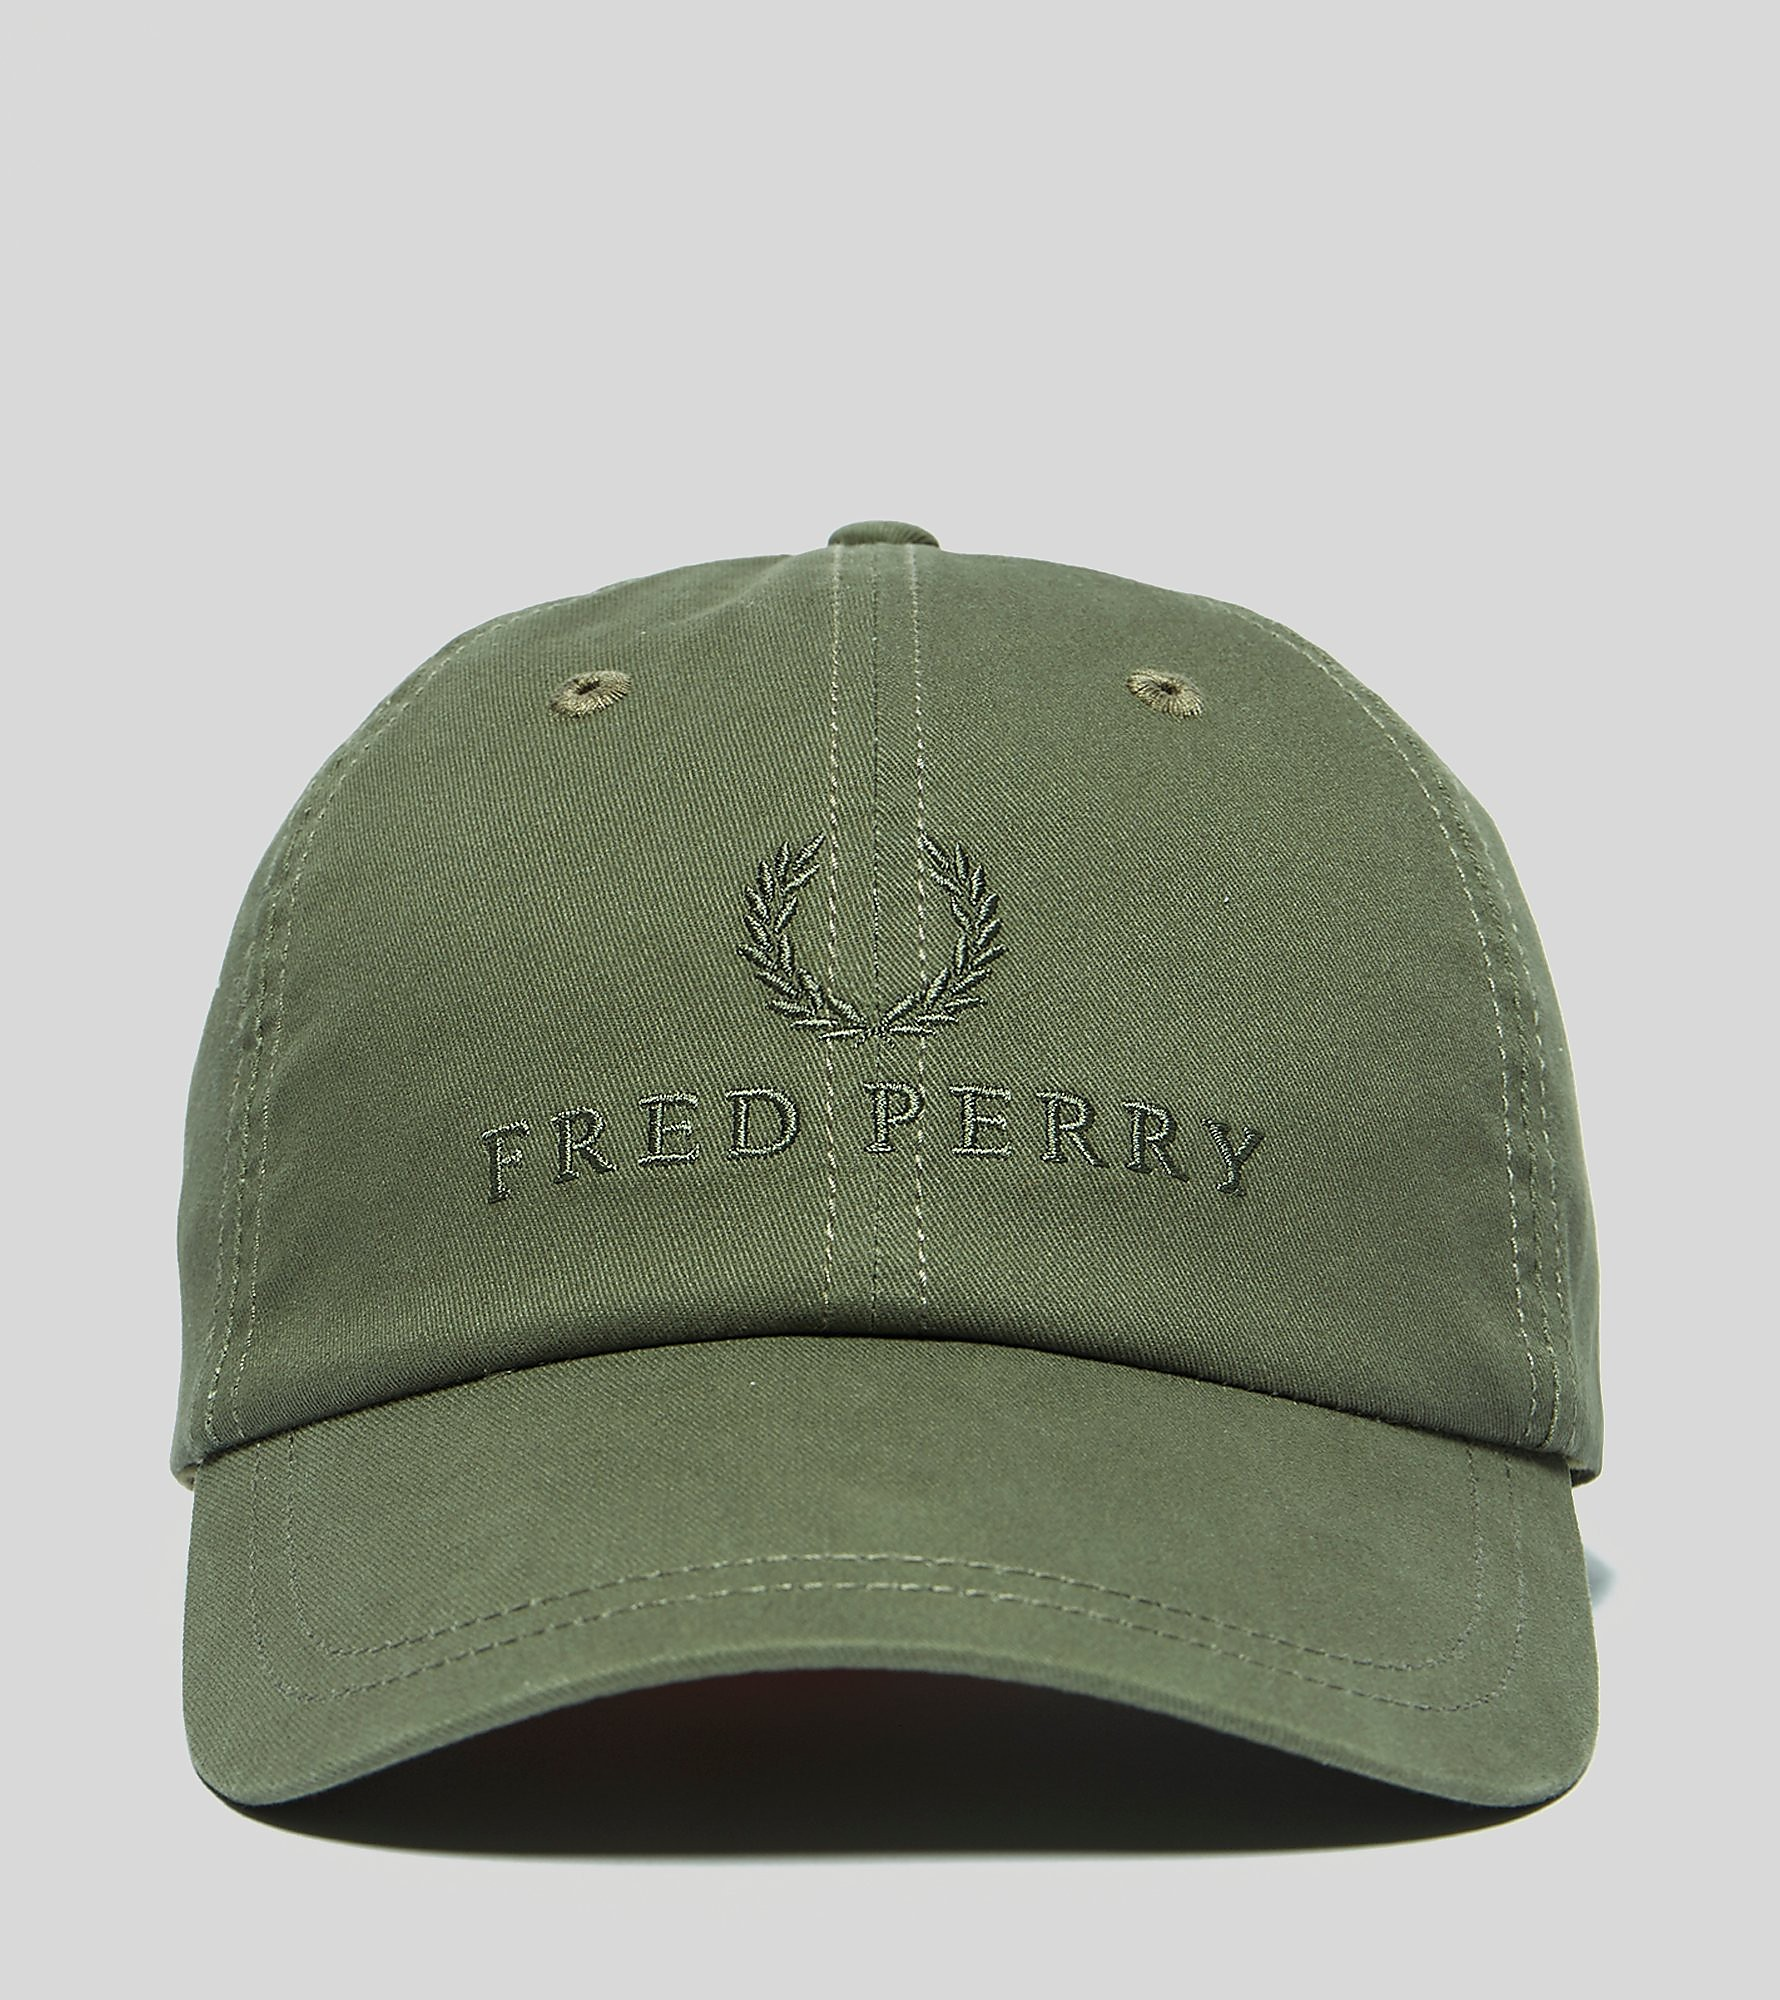 Fred Perry Tonal Tennis Kasket